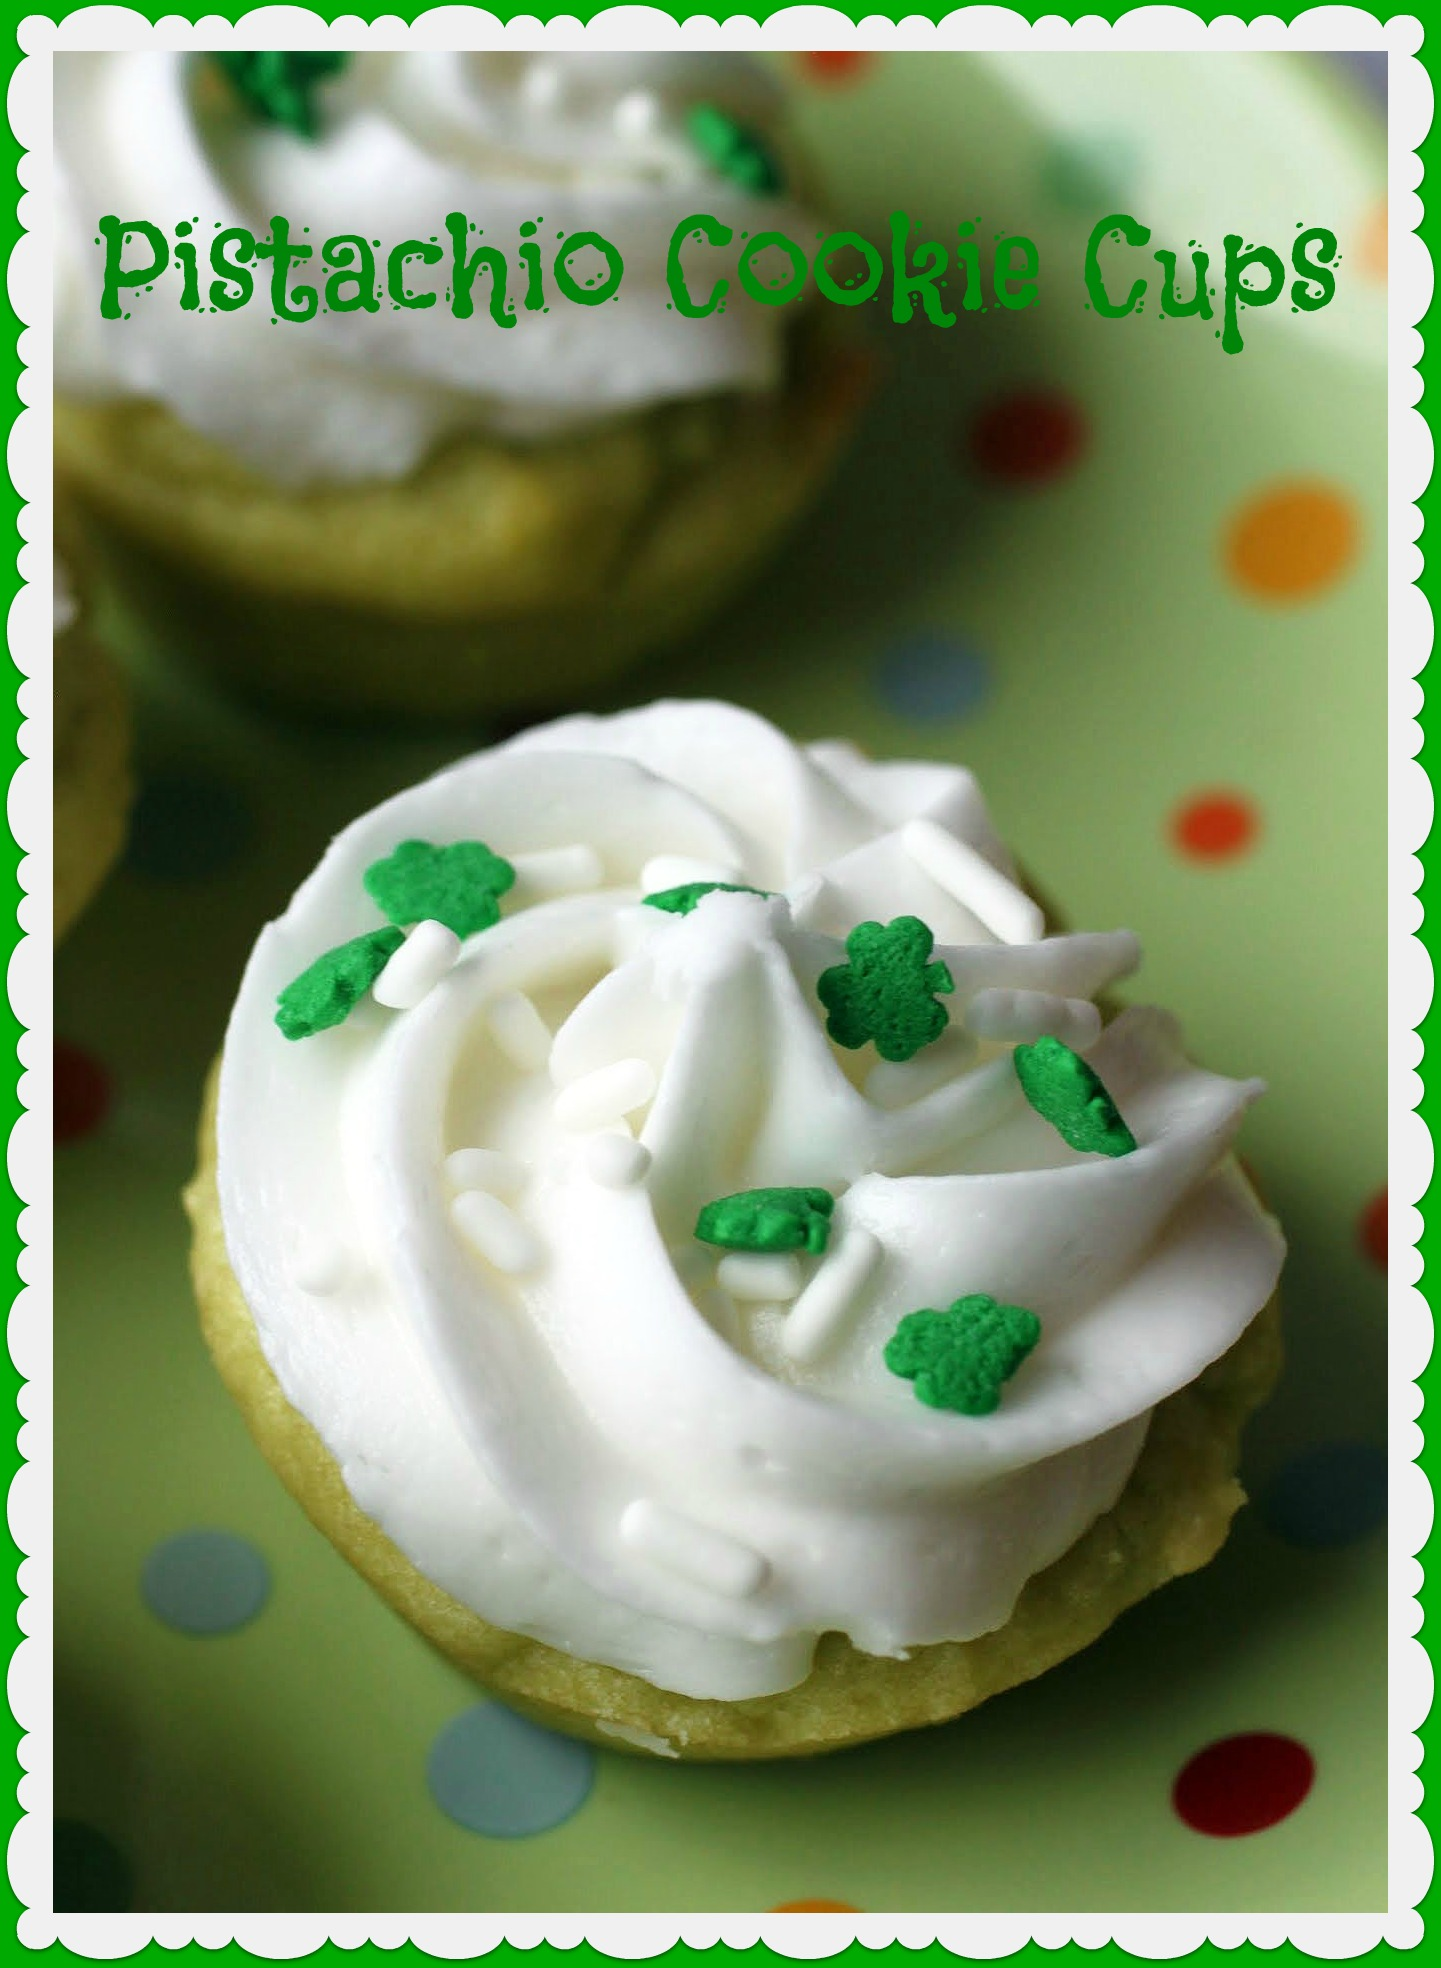 Pistachio Cookie Cups